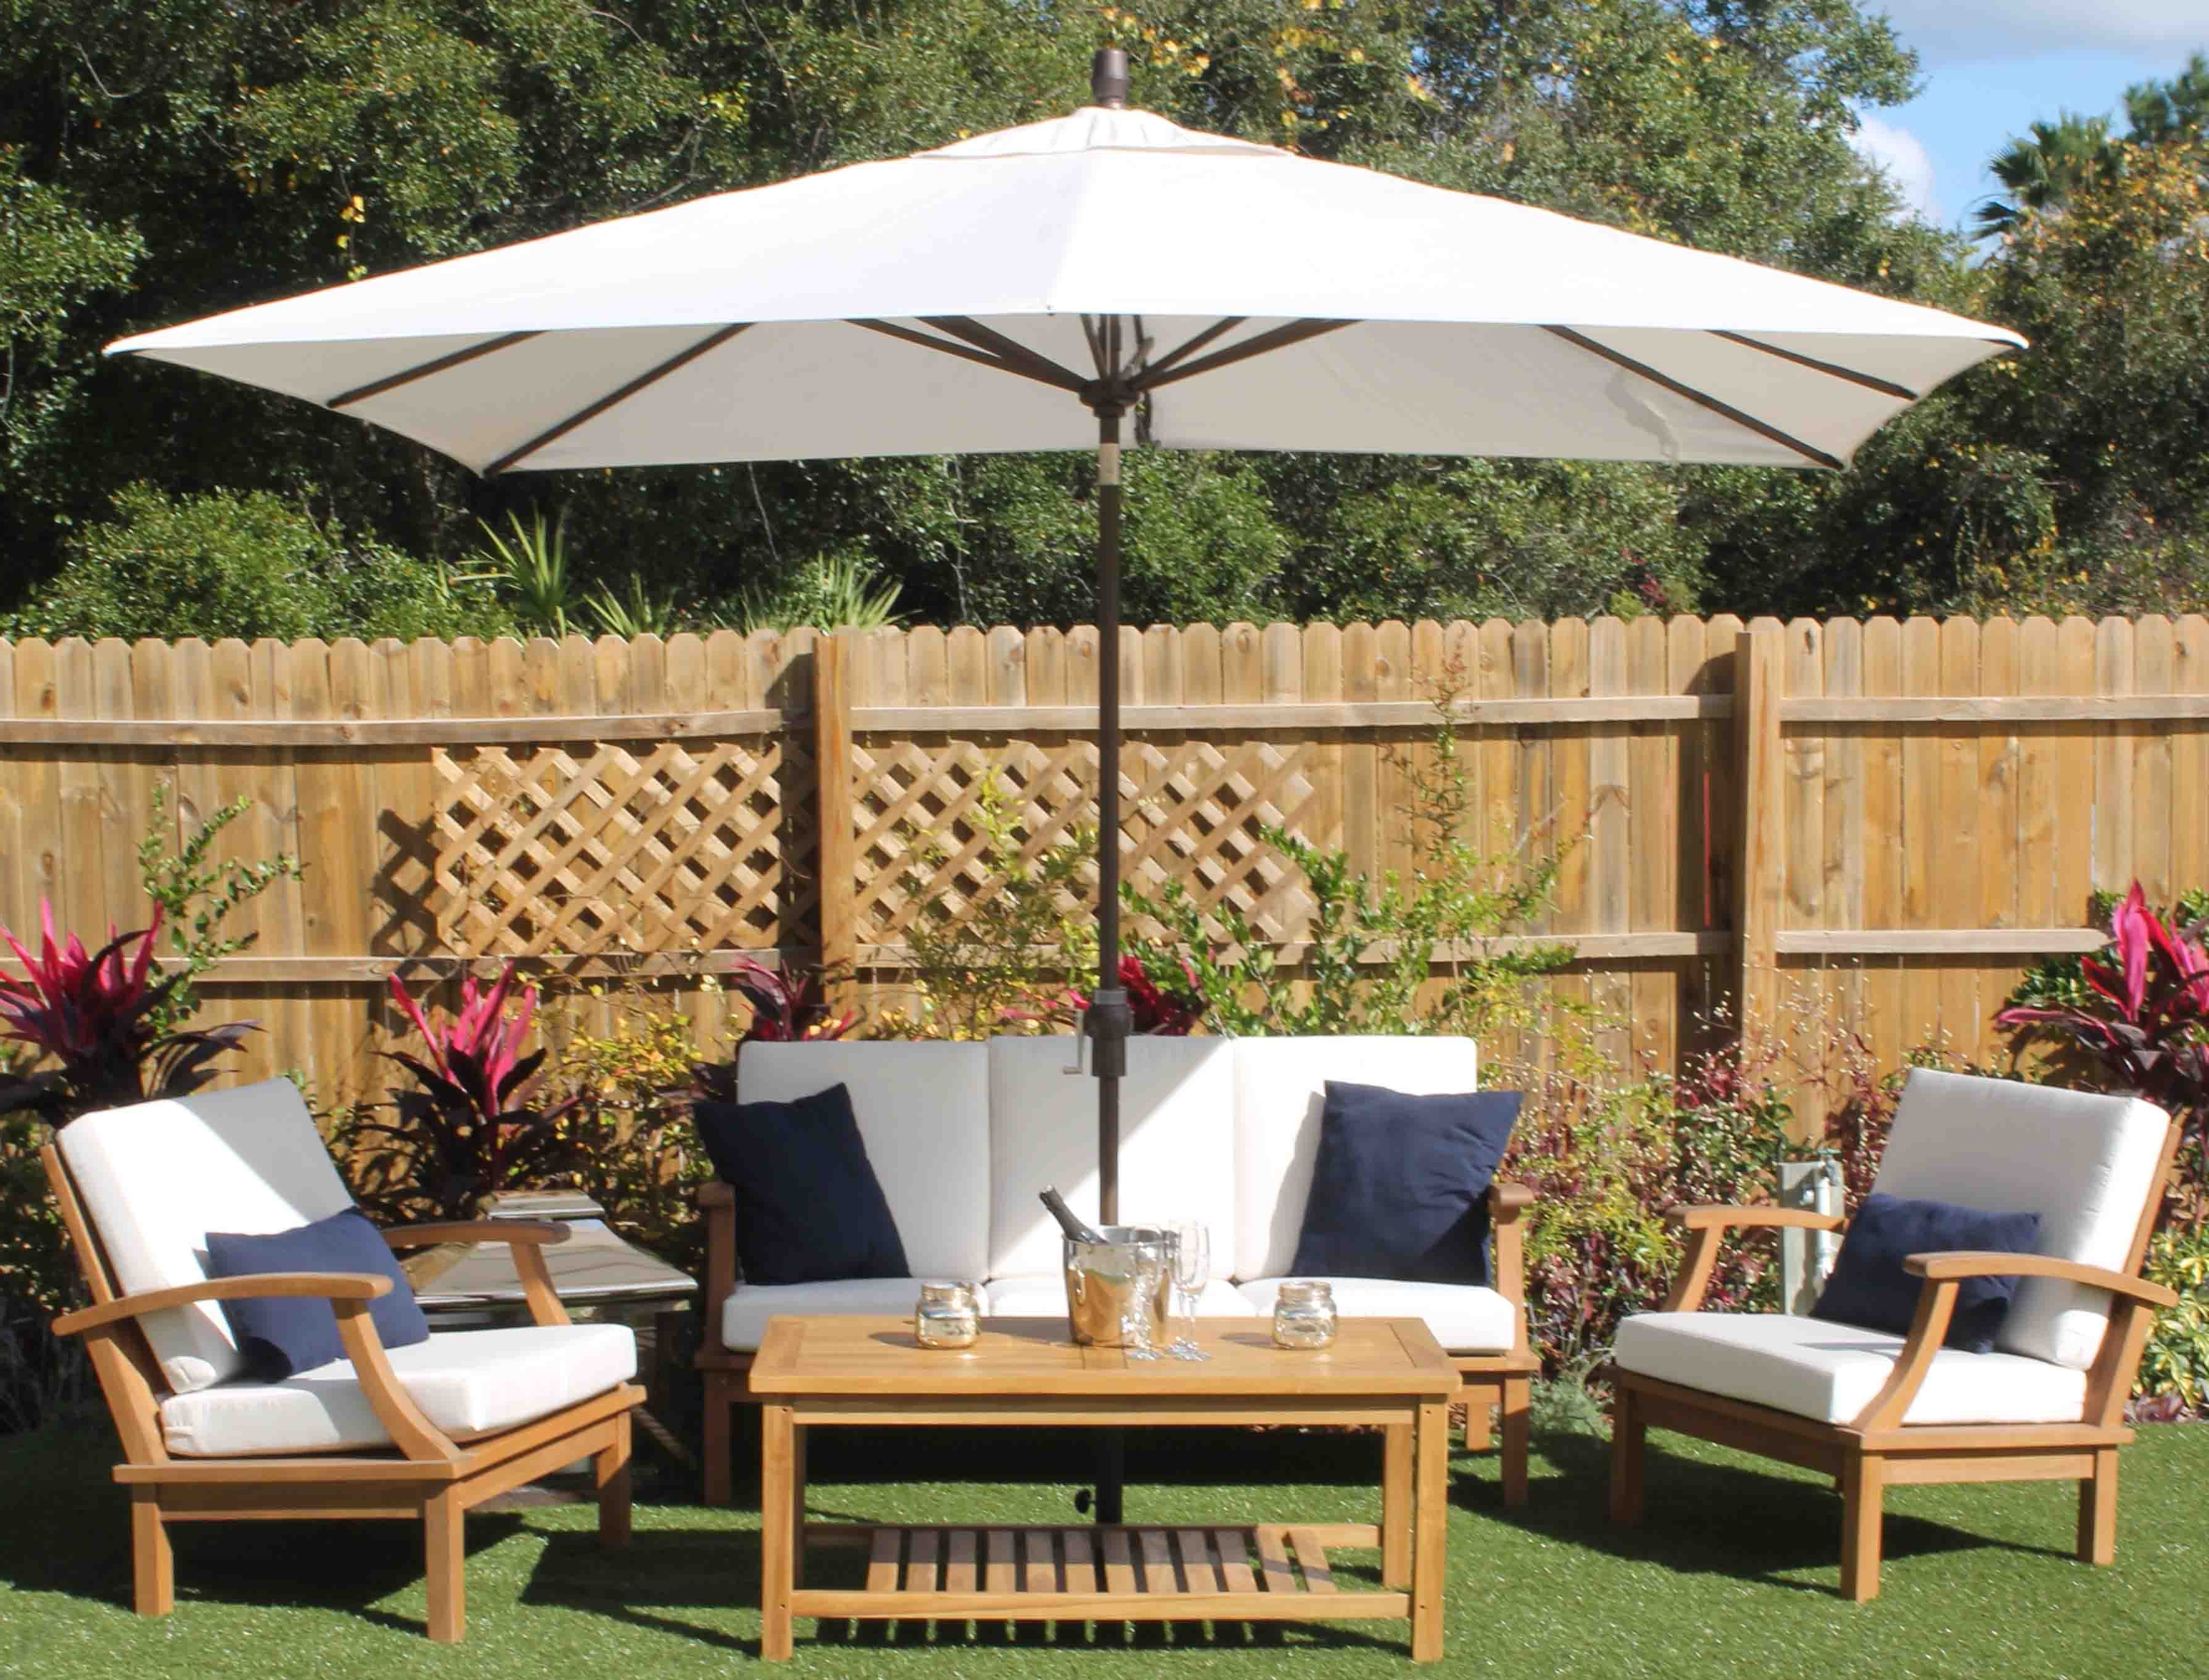 Newest 48 Rectangular Sunbrella Patio Umbrellas, 6#039; X 10#039; Sunbrella Pertaining To Sunbrella Outdoor Patio Umbrellas (Gallery 17 of 20)